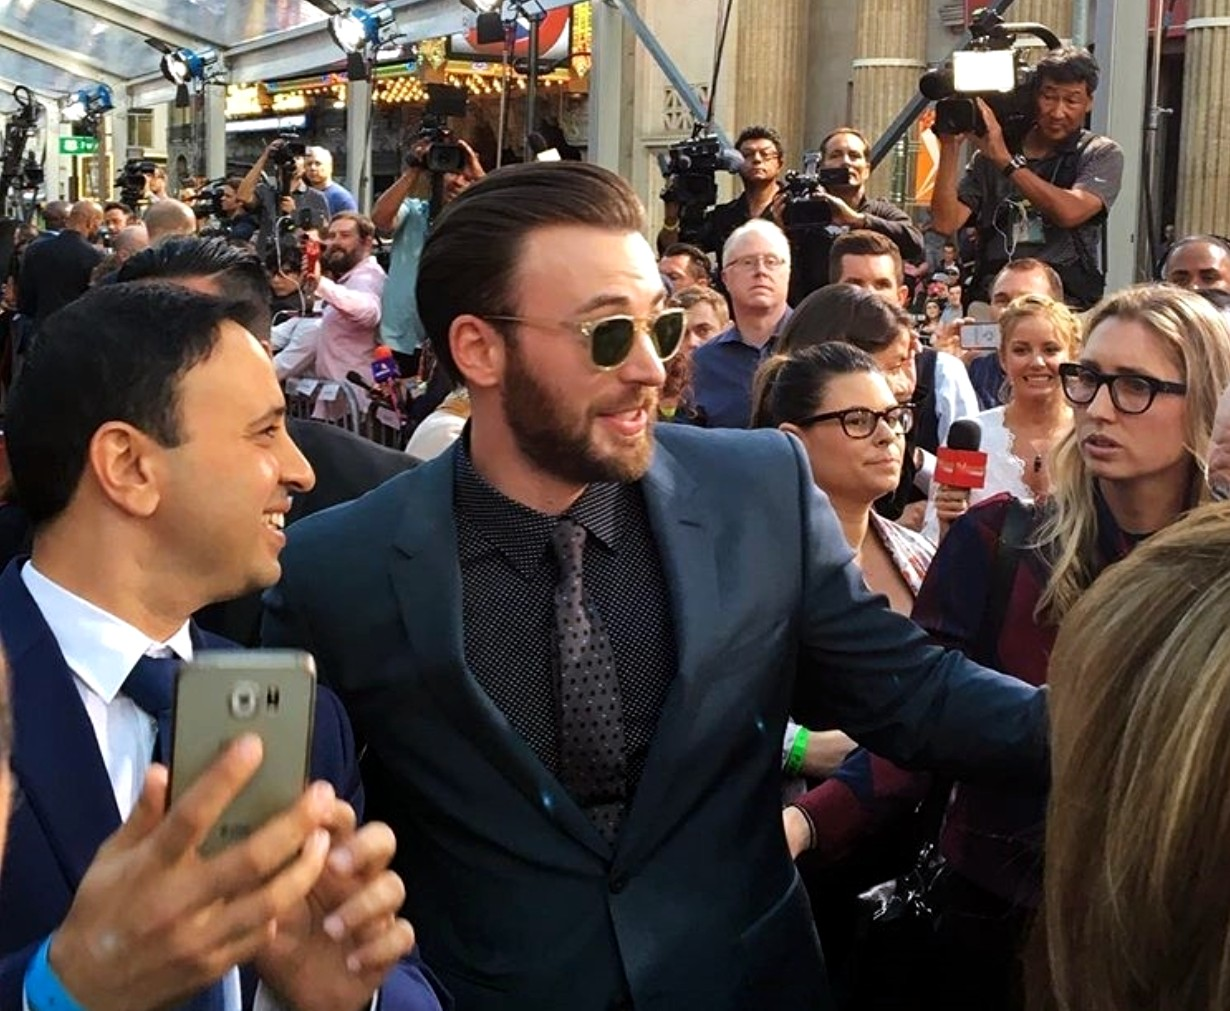 Captain America Civil War, movie premiere, Chris Evans